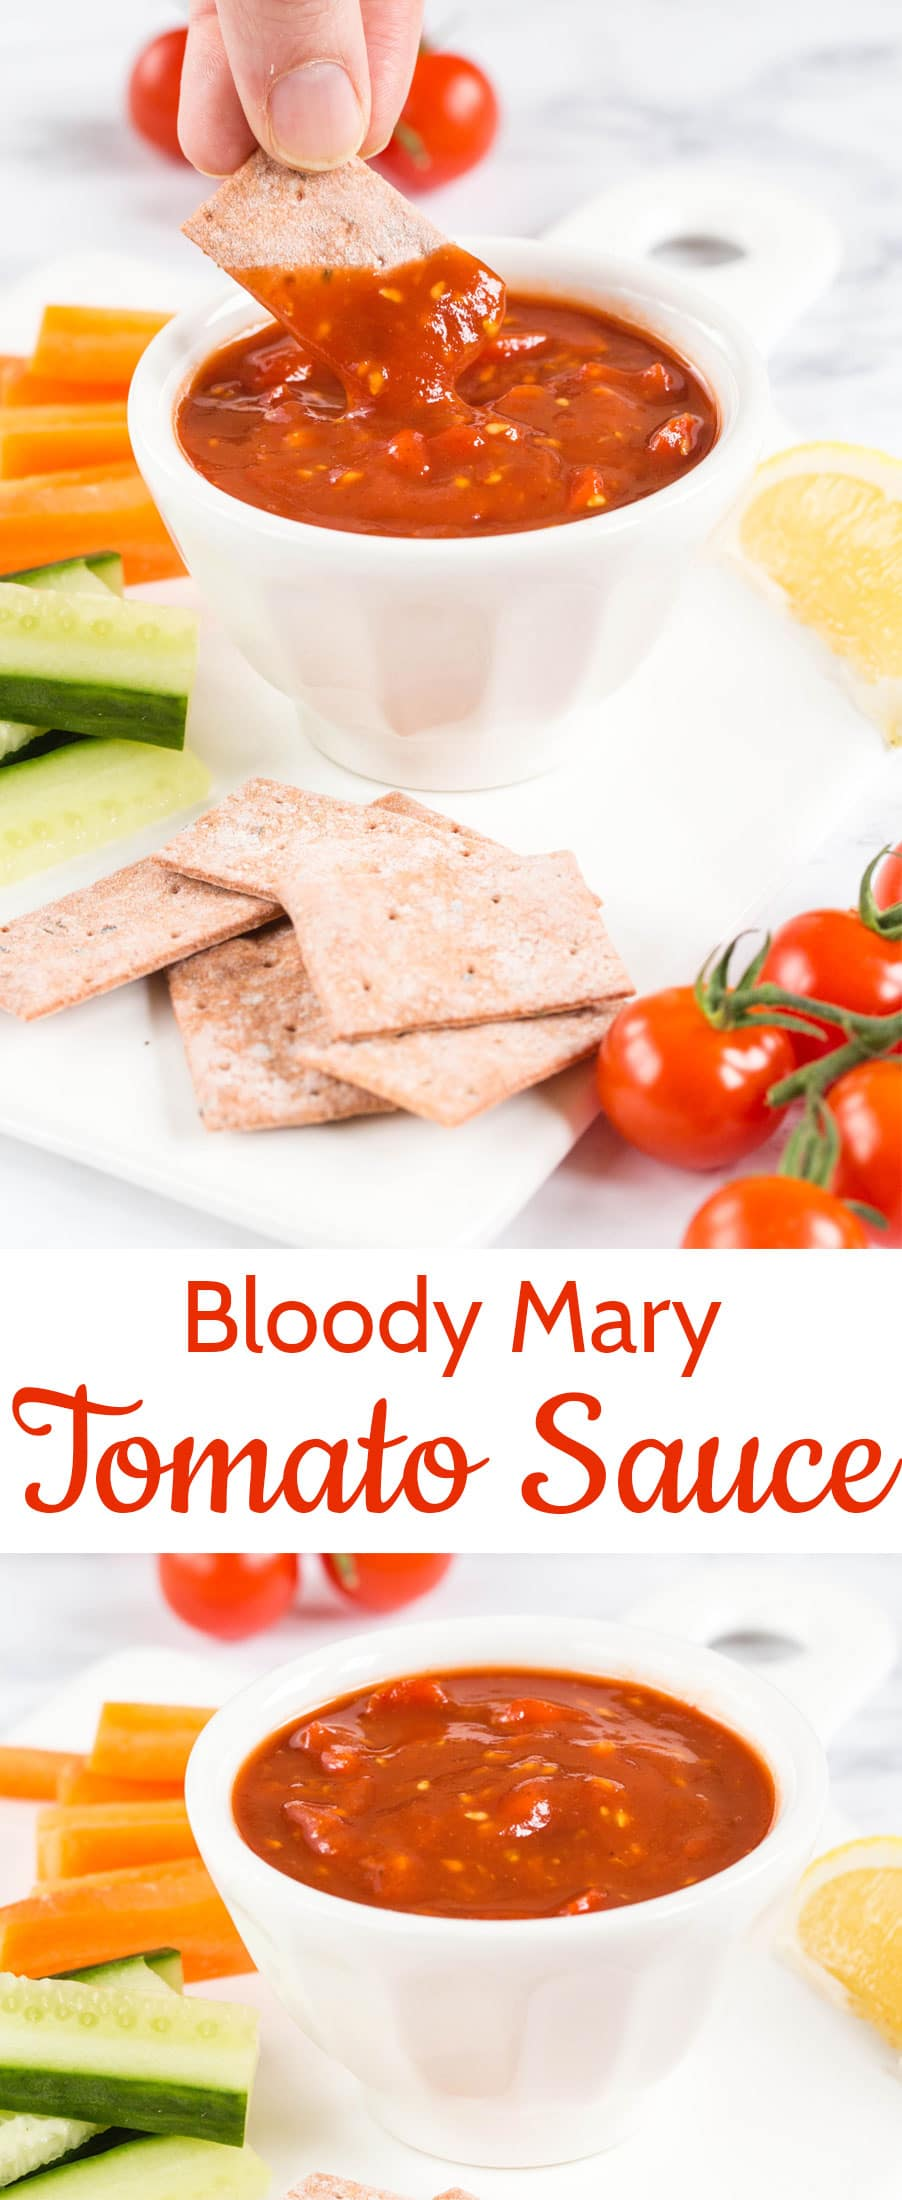 Bloody Mary tomato sauce; a hint of heat makes this easy-to-make sauce a real winner. Use as a dip or sauce, it's brilliantly versatile